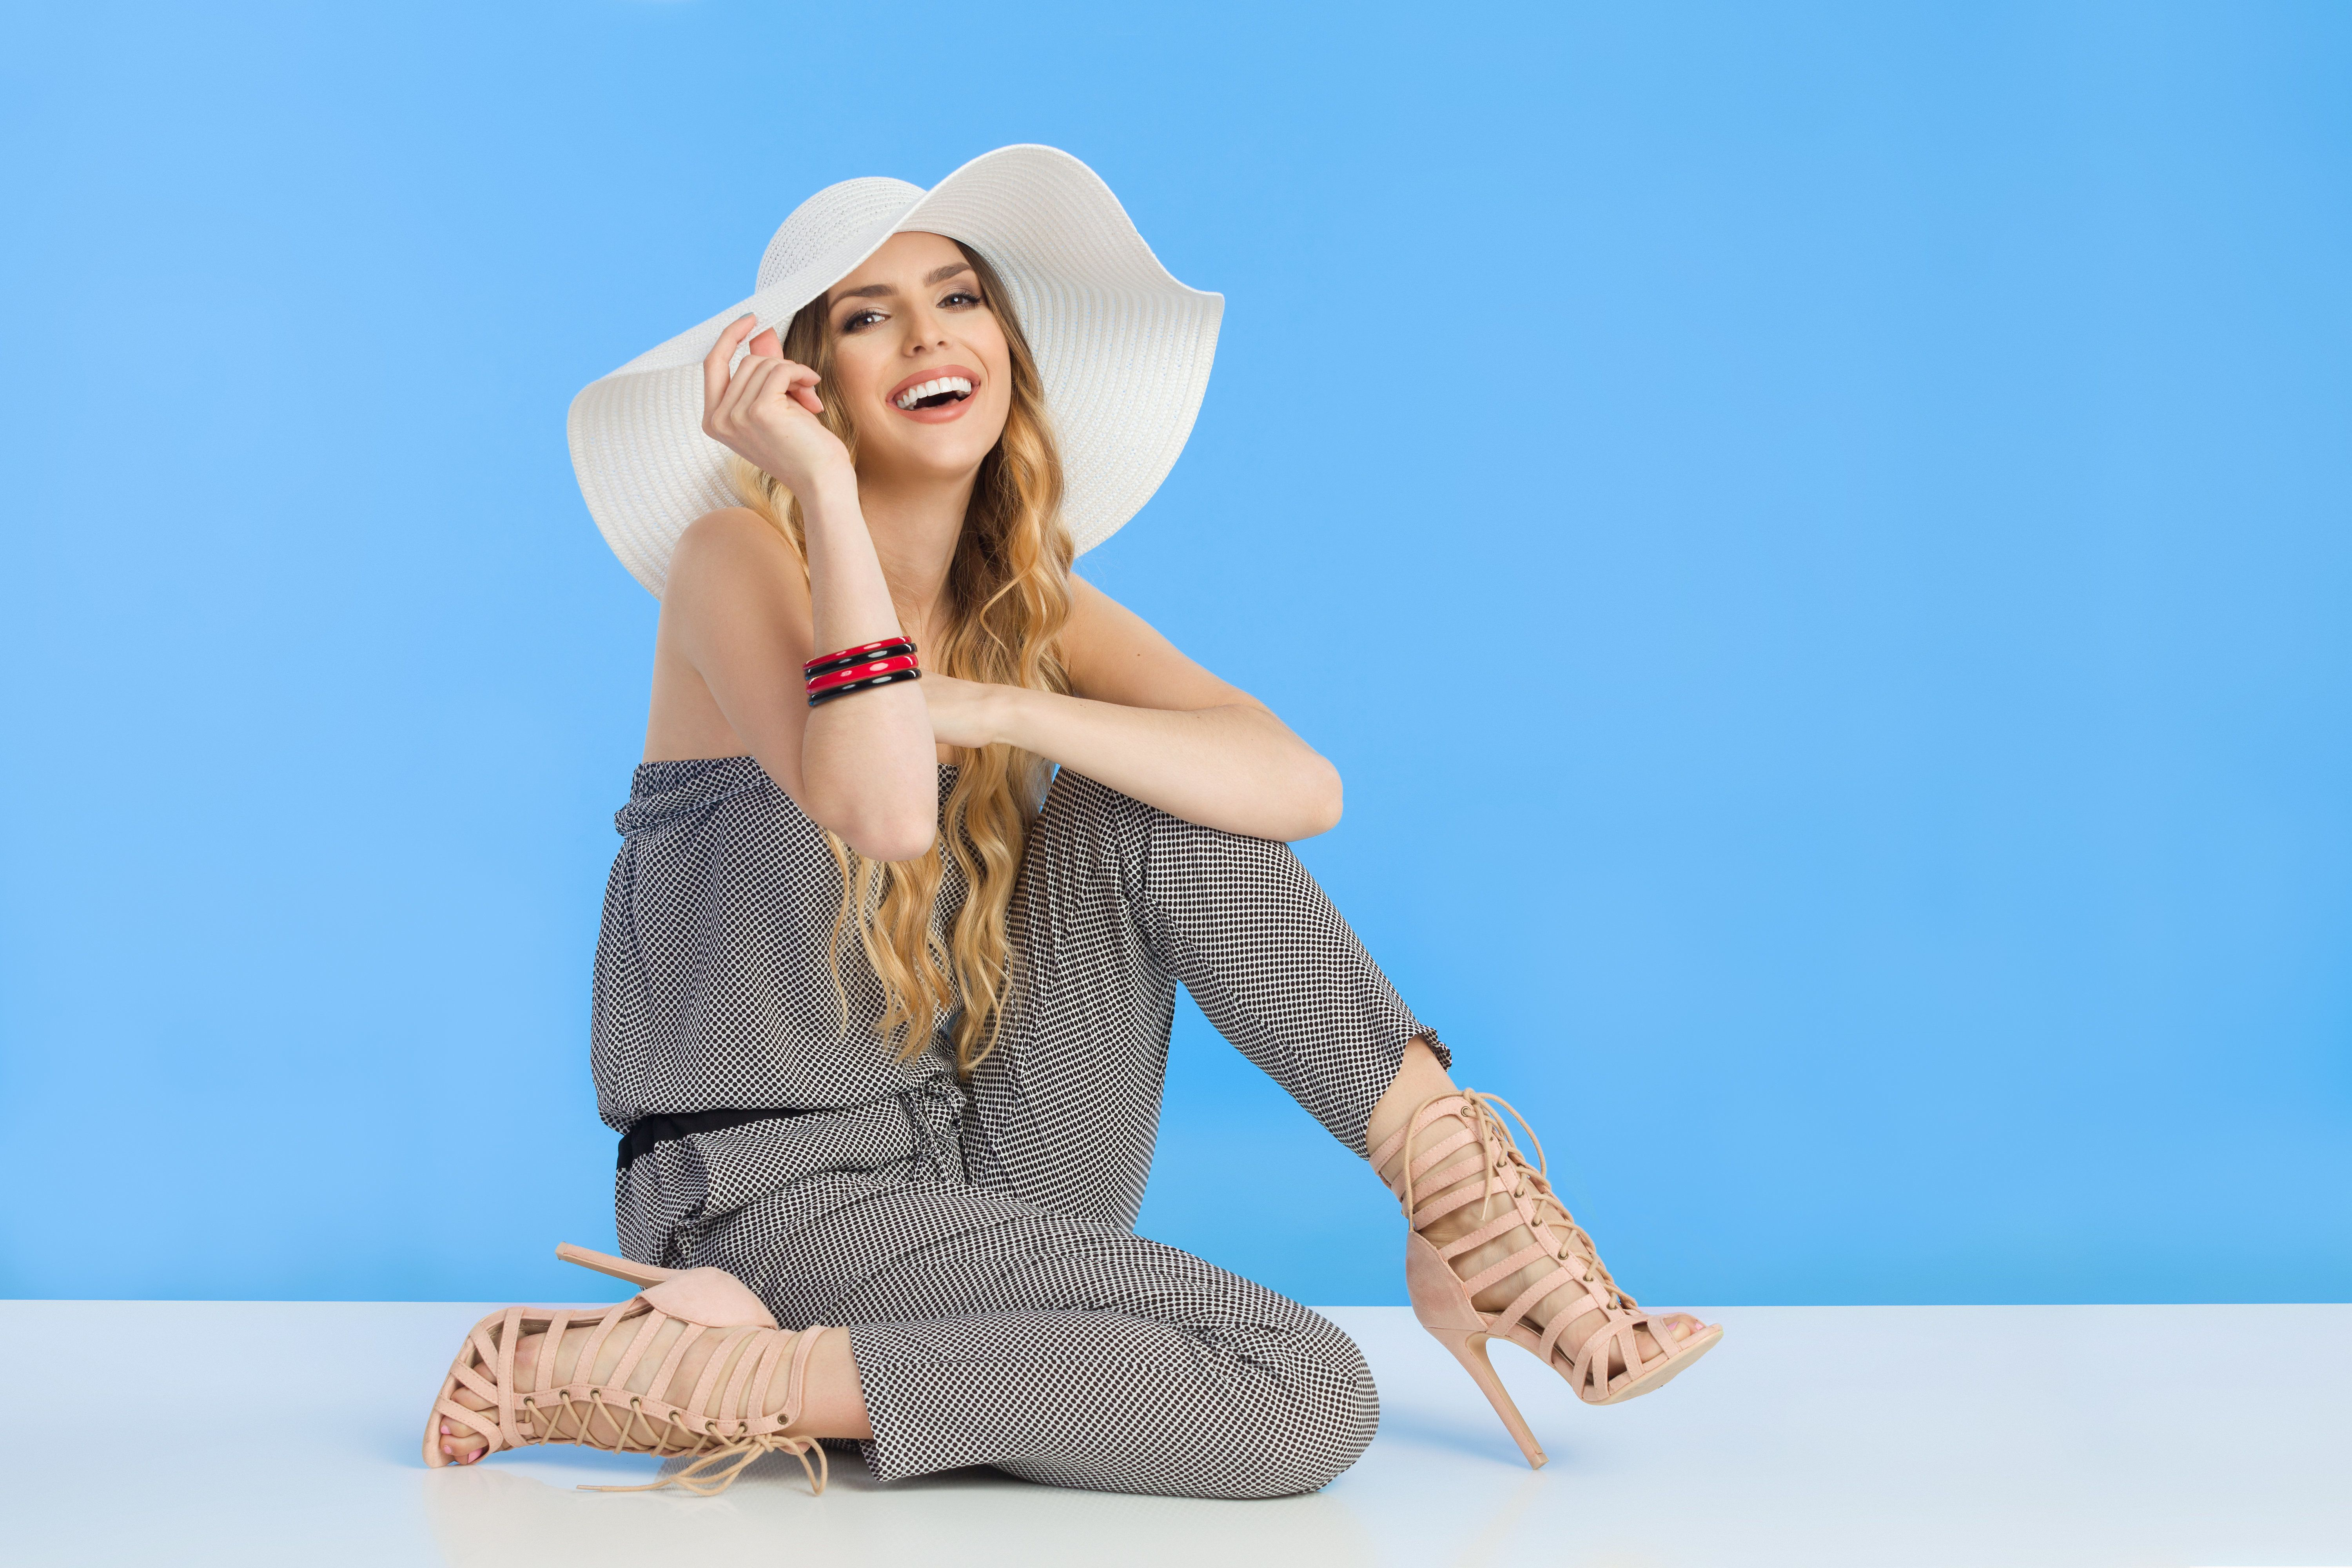 Beautiful young woman in summer jumpsuit, high heels and white sun hat is sitting on floor looking at camera and laughing. Full length studio shot.